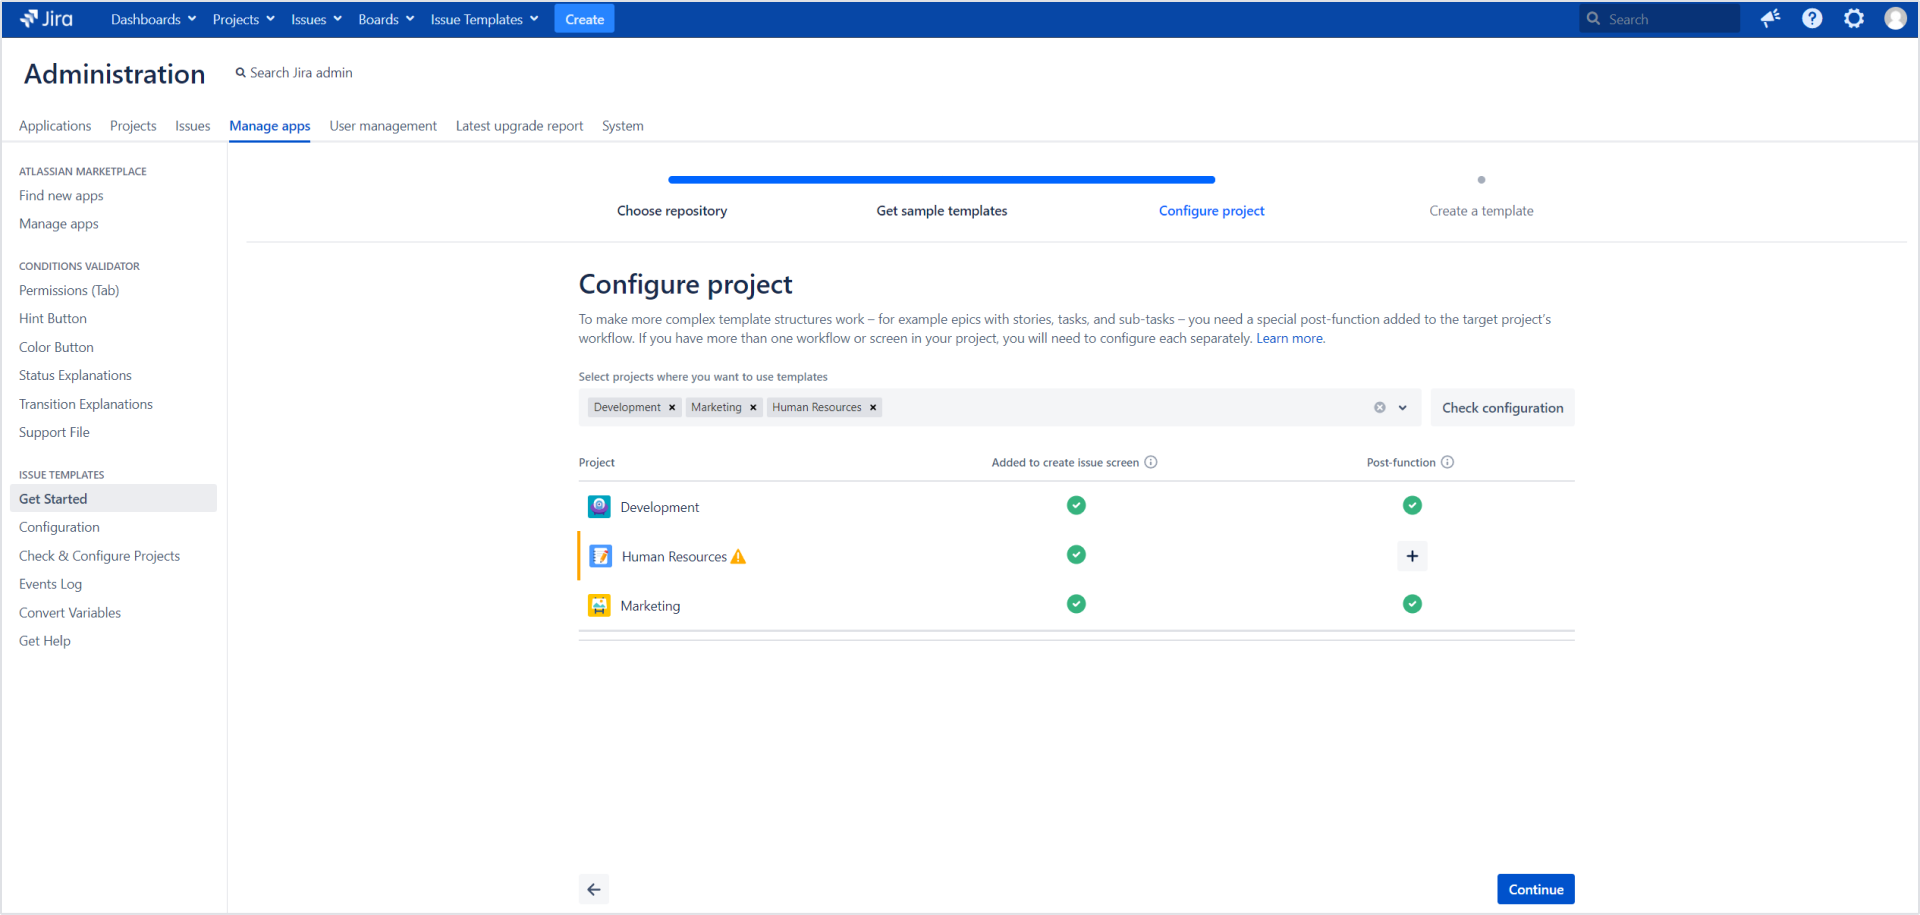 Issue Templates for Jira - Configure project